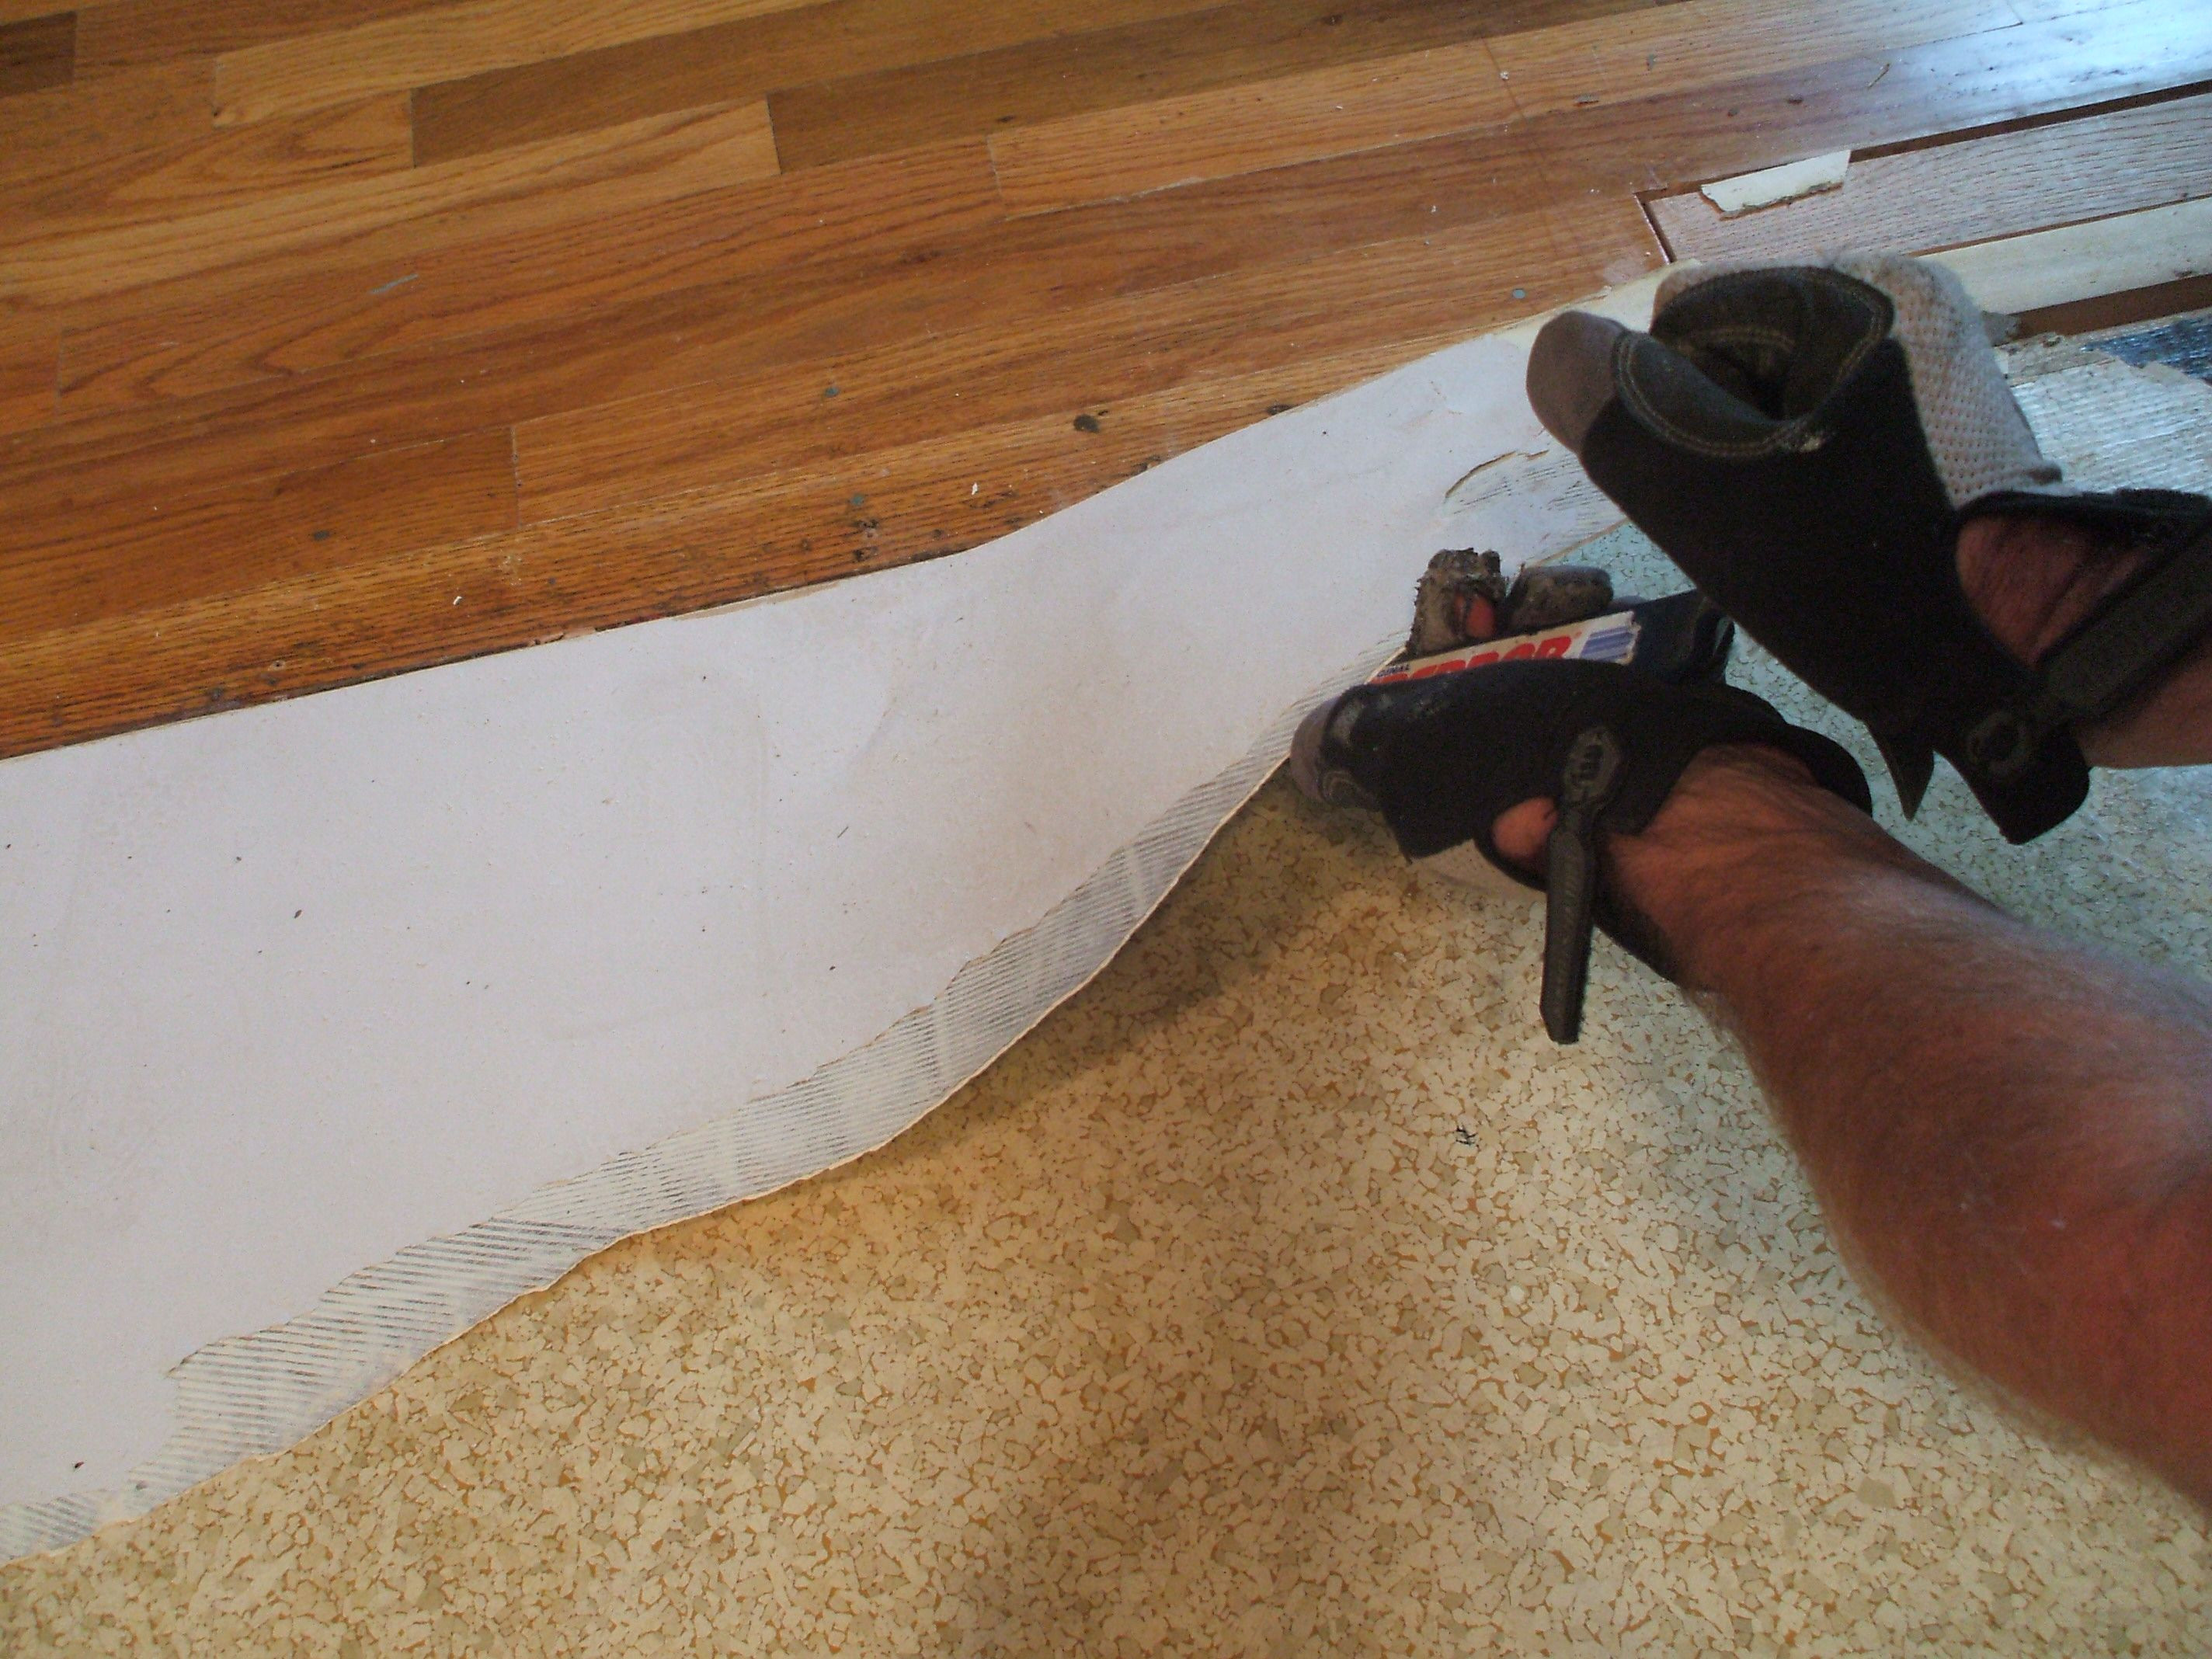 How to Glue Down Hardwood Floors Of How to Remove Vinyl Flooring with Less Effort and Mess Regarding Remove Vinyl Use Prybar On Easy Glued areas 56a49e3e5f9b58b7d0d7ddce Jpg